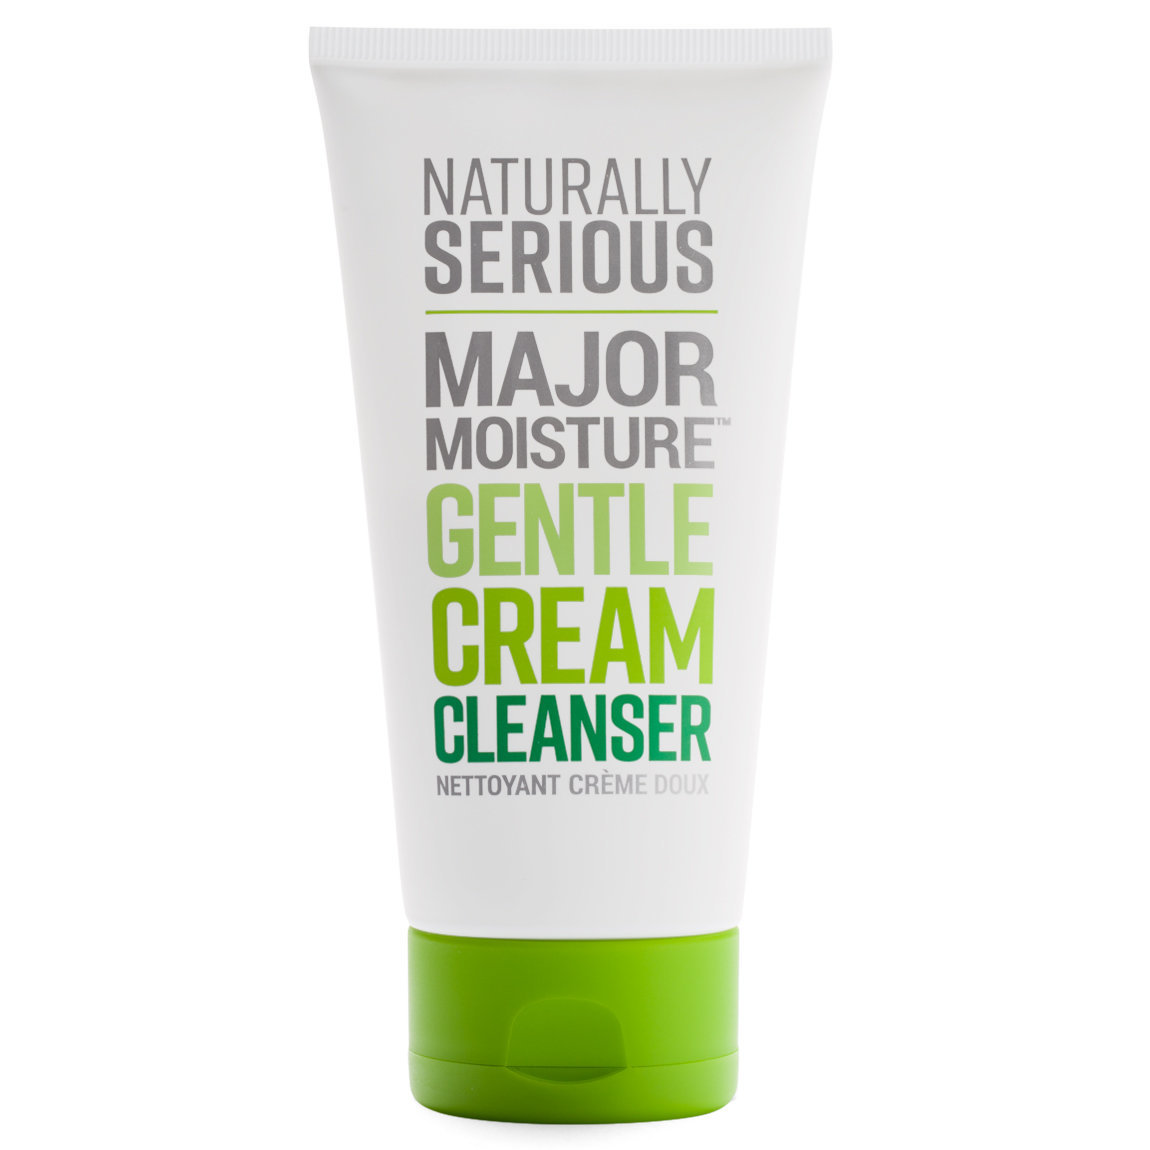 Naturally Serious Major Moisture Gentle Cream Cleanser product swatch.